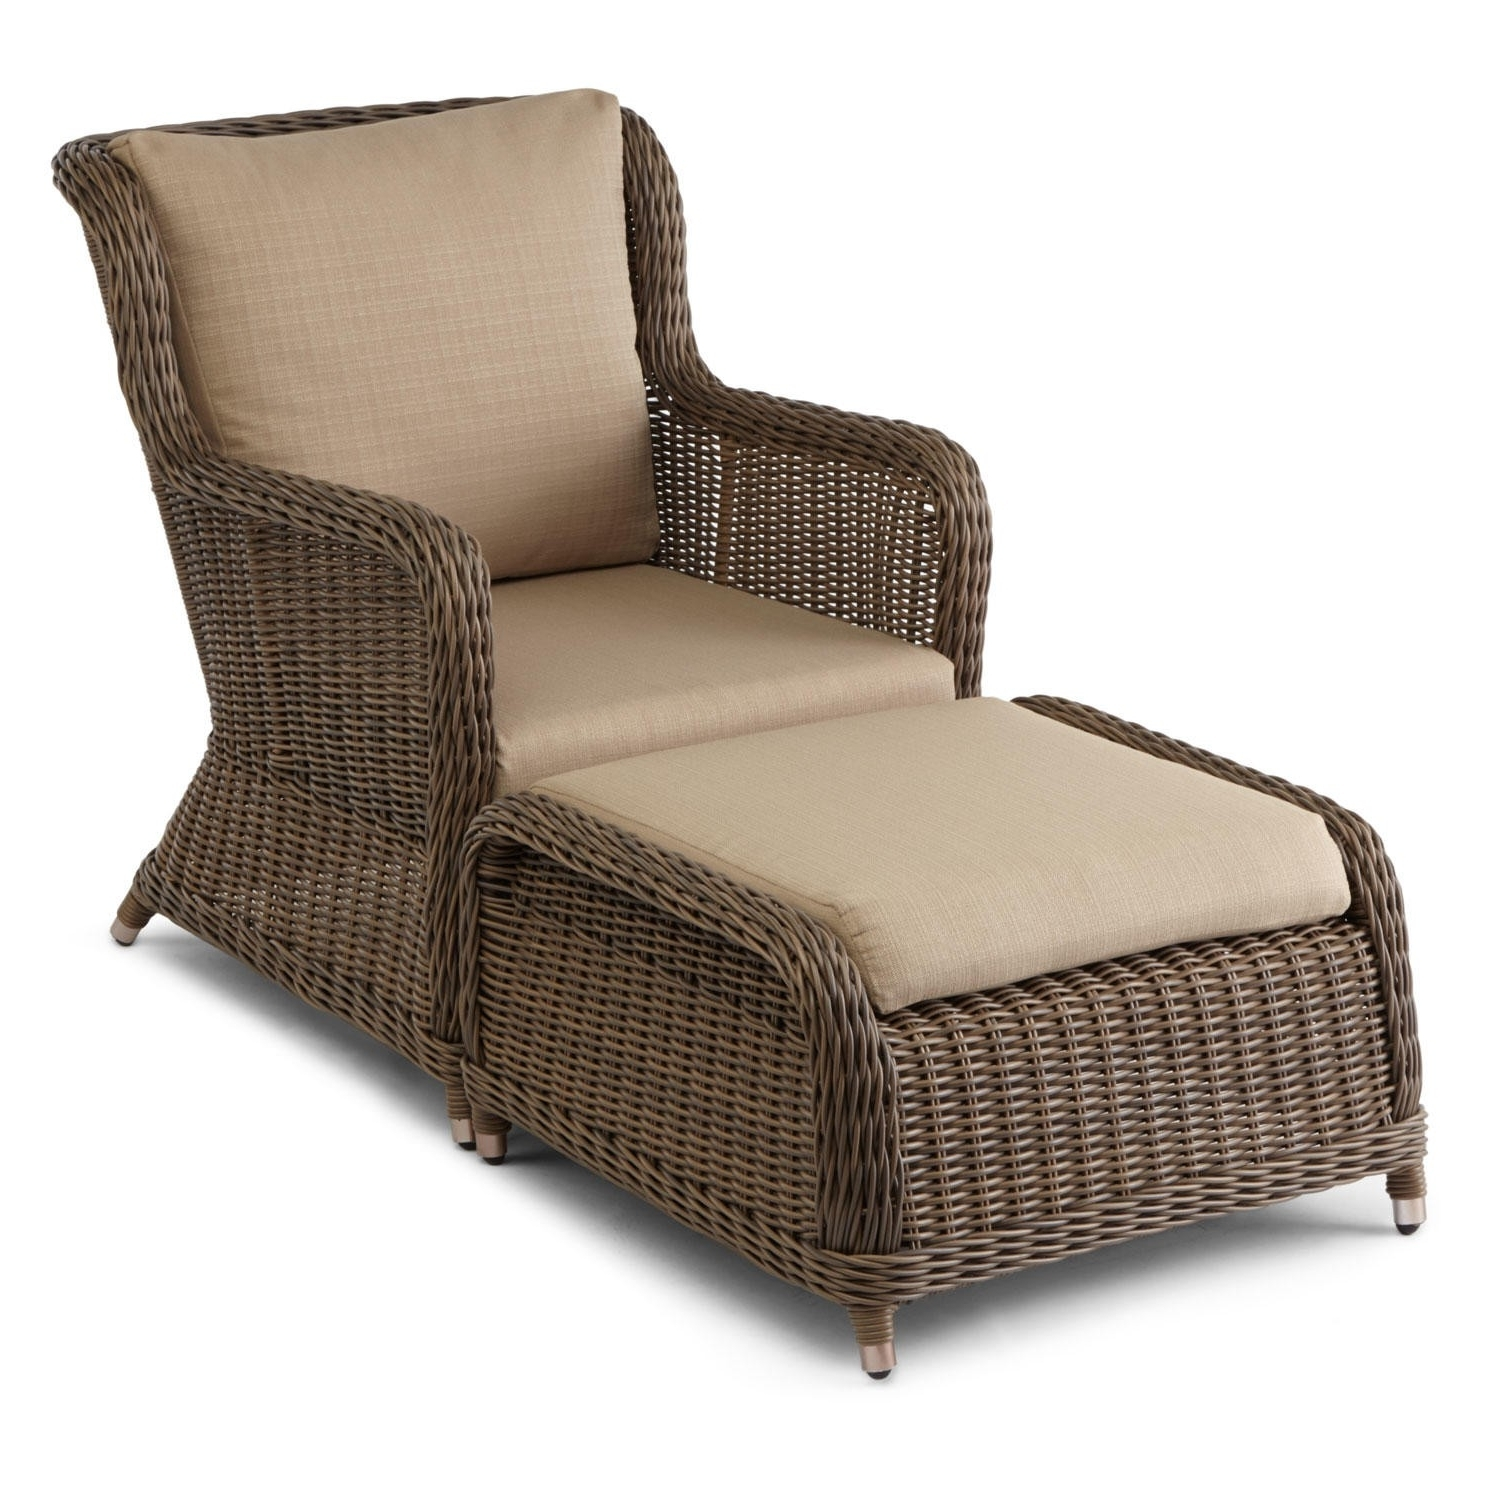 Wicker Chair With Ottoman – Modern Chairs Quality Interior 2017 Within Latest Chairs With Ottoman (View 12 of 15)